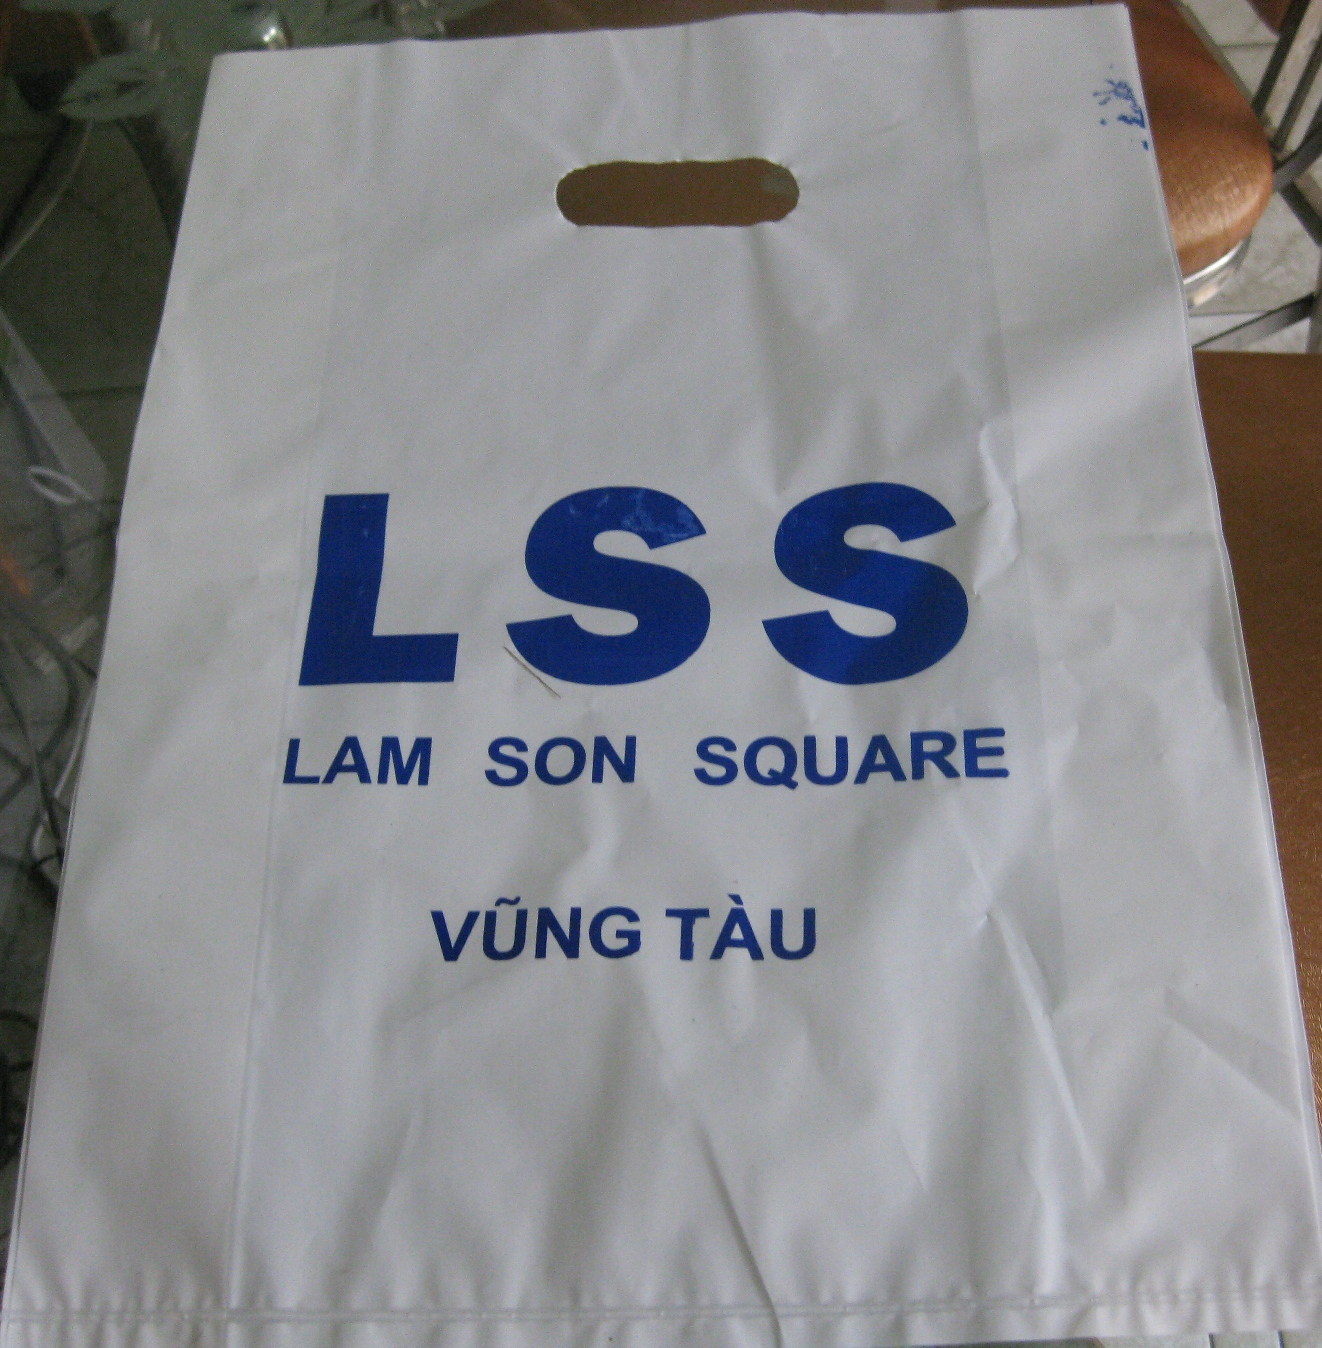 2 In tem decal gia re,in tem decal tphcm,in decal giấy In tem decal chuyên nghiệp   in tem bao hanh, i